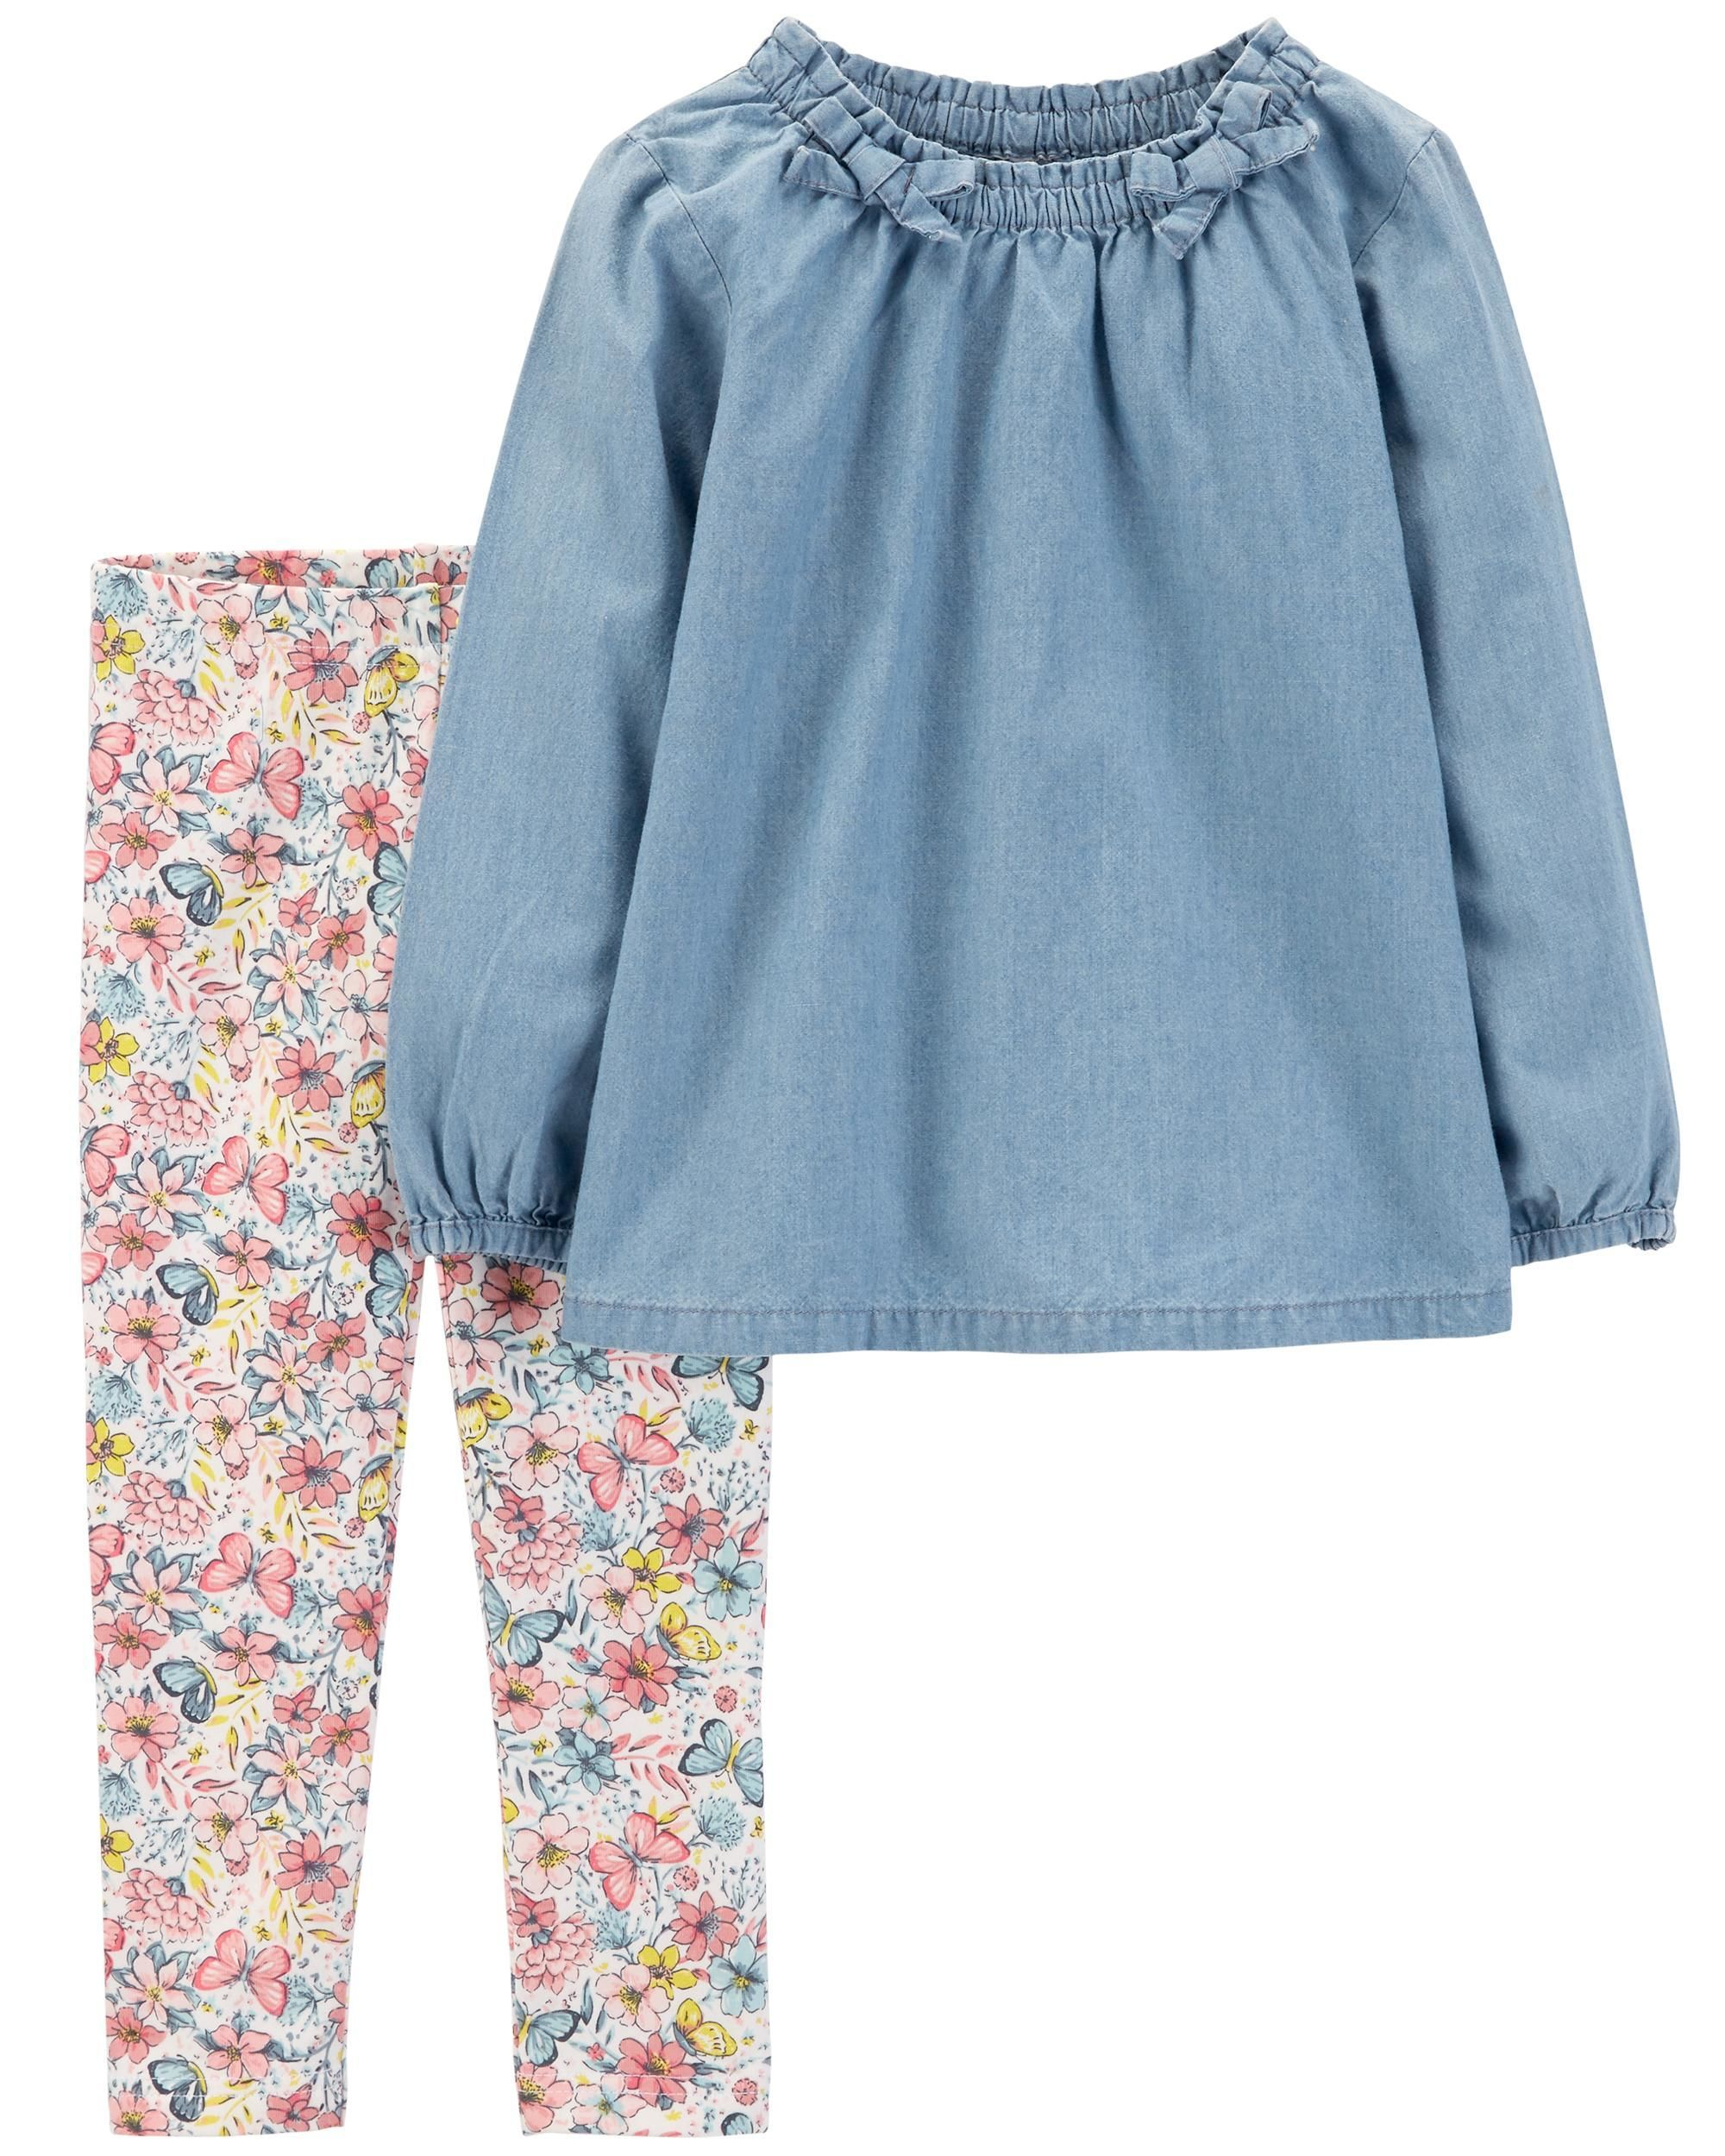 6a1327653d 2-Piece Chambray Top & Floral Legging Set | Outfits-Girls▫Shorts ...